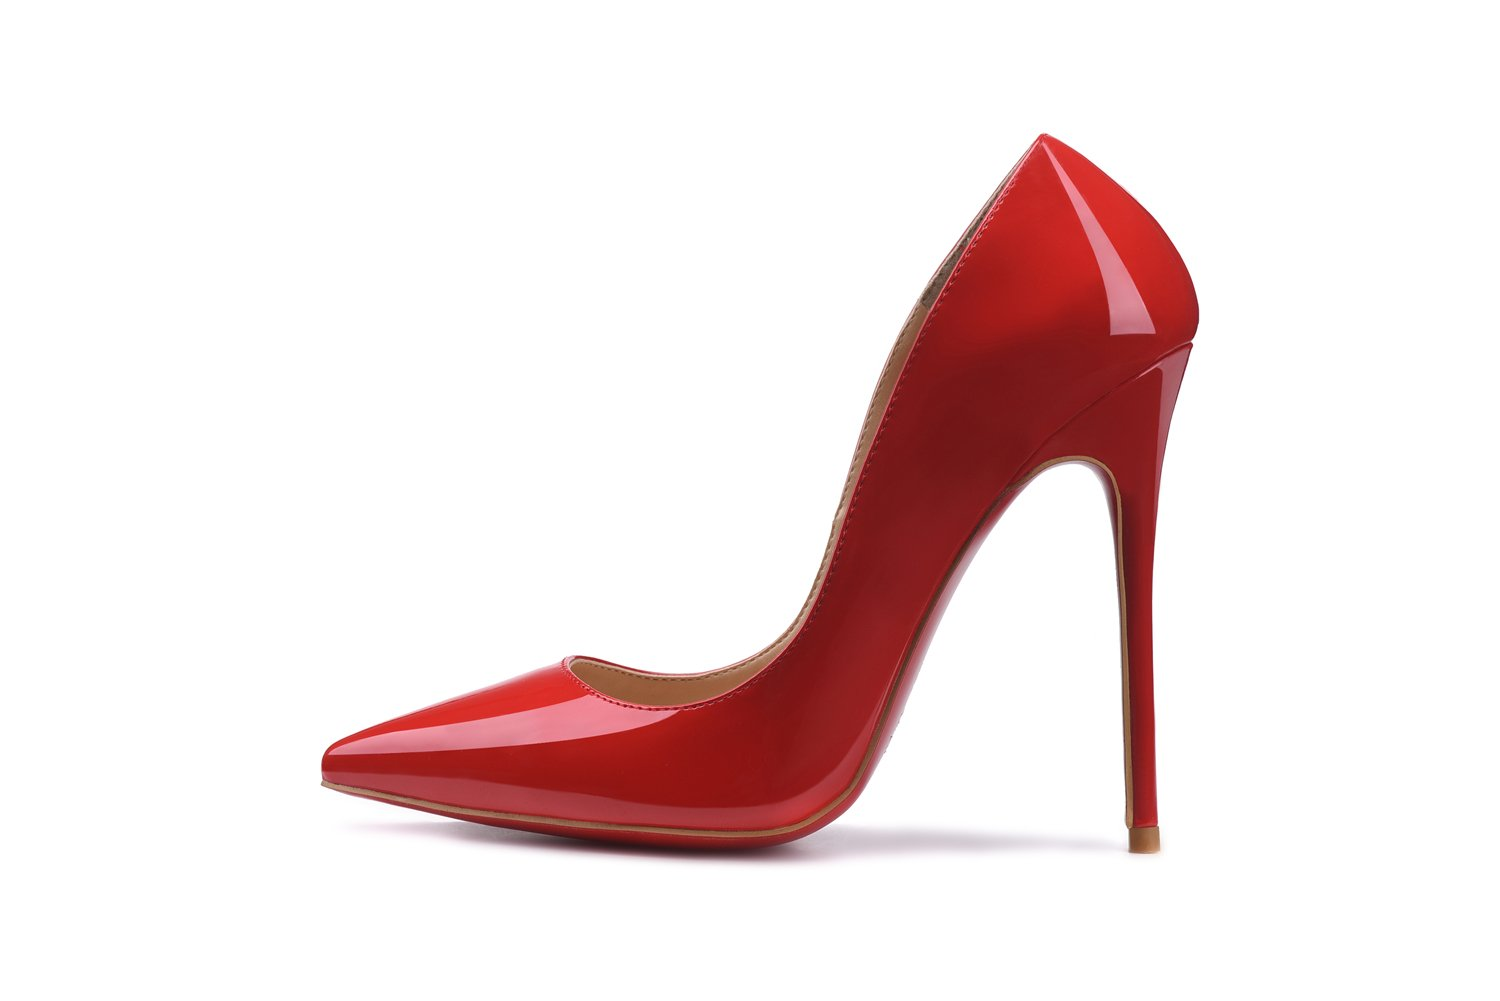 Women Shoe Pointed Toe Pumps Party Sandals Fashion Patent Leather High Heel Stilettos On Dress 12cm B07DG2FBH1 6.5 B(M) US|Red